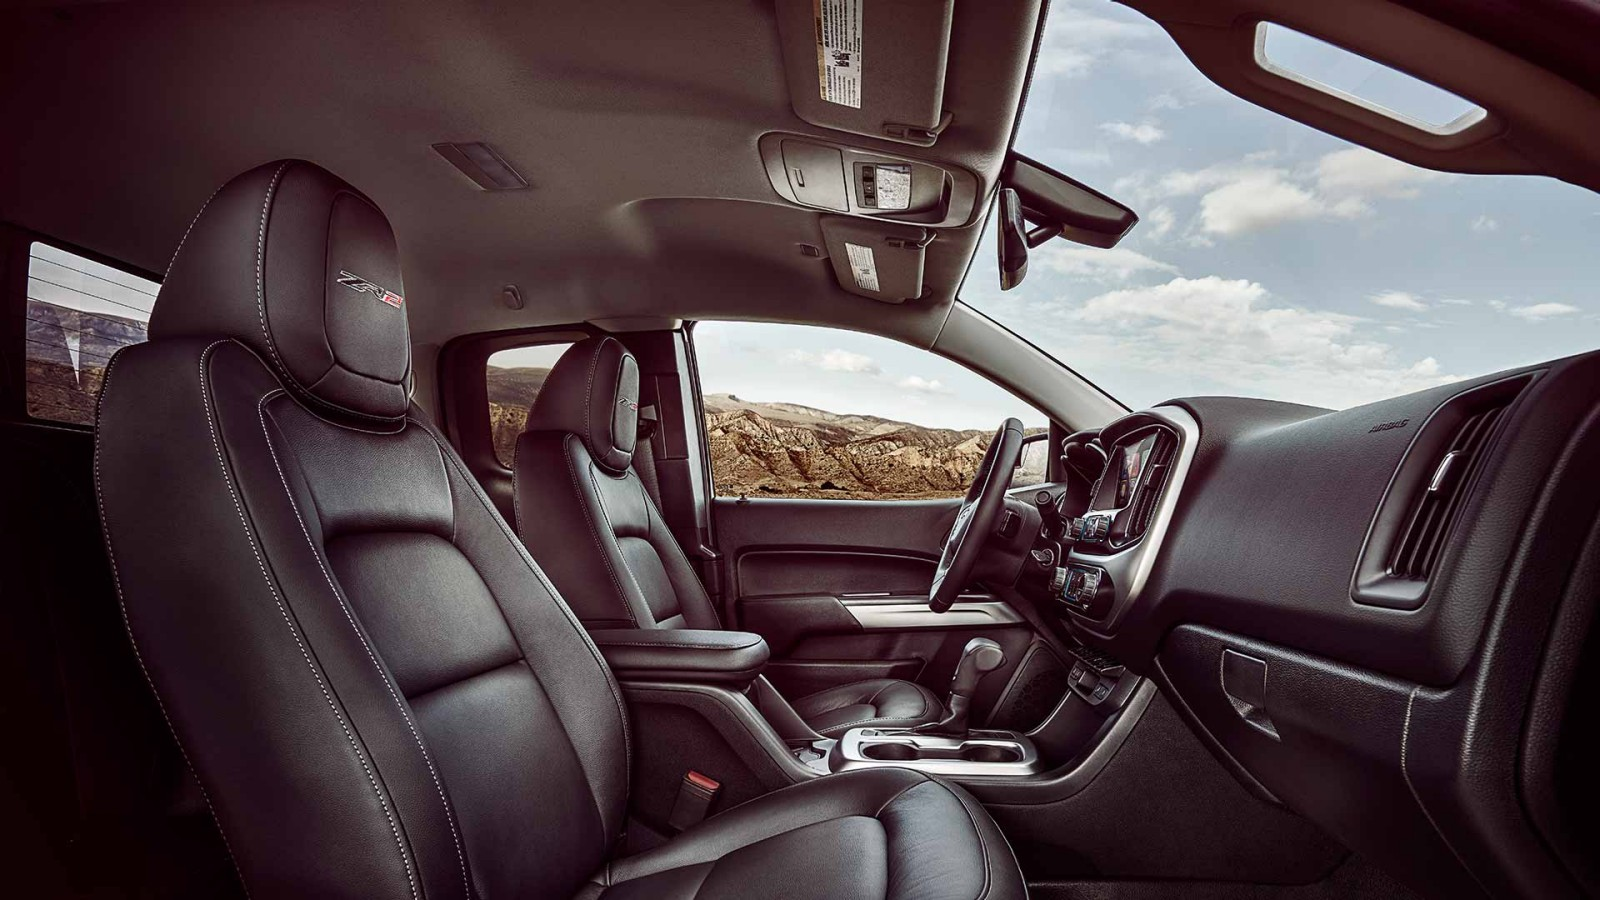 2017 Chevrolet Colorado Interior